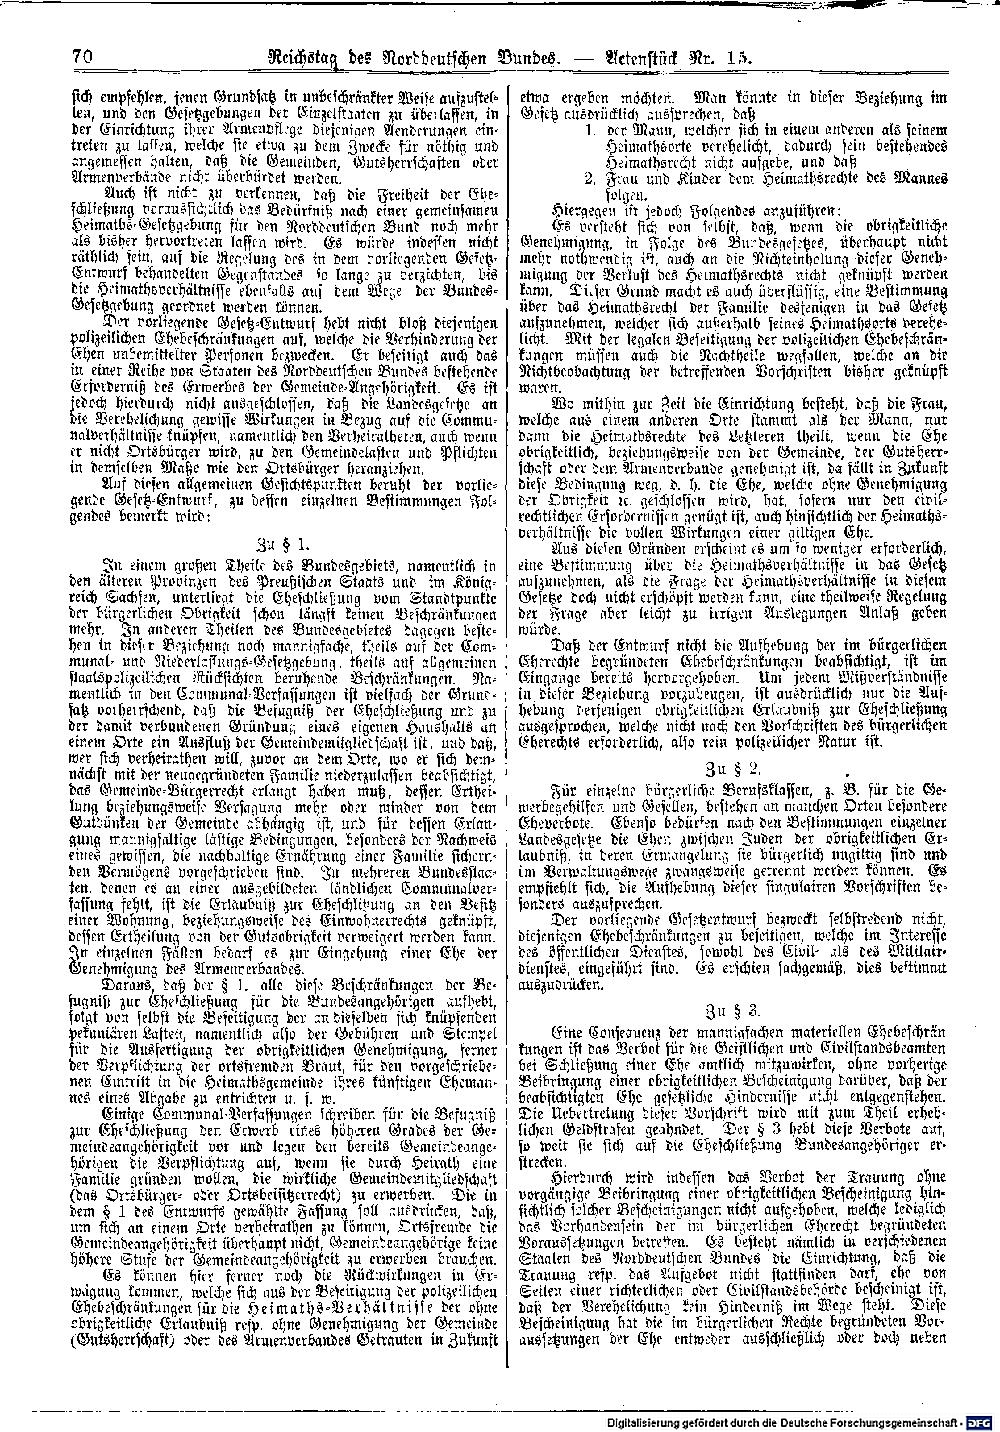 Scan of page 70